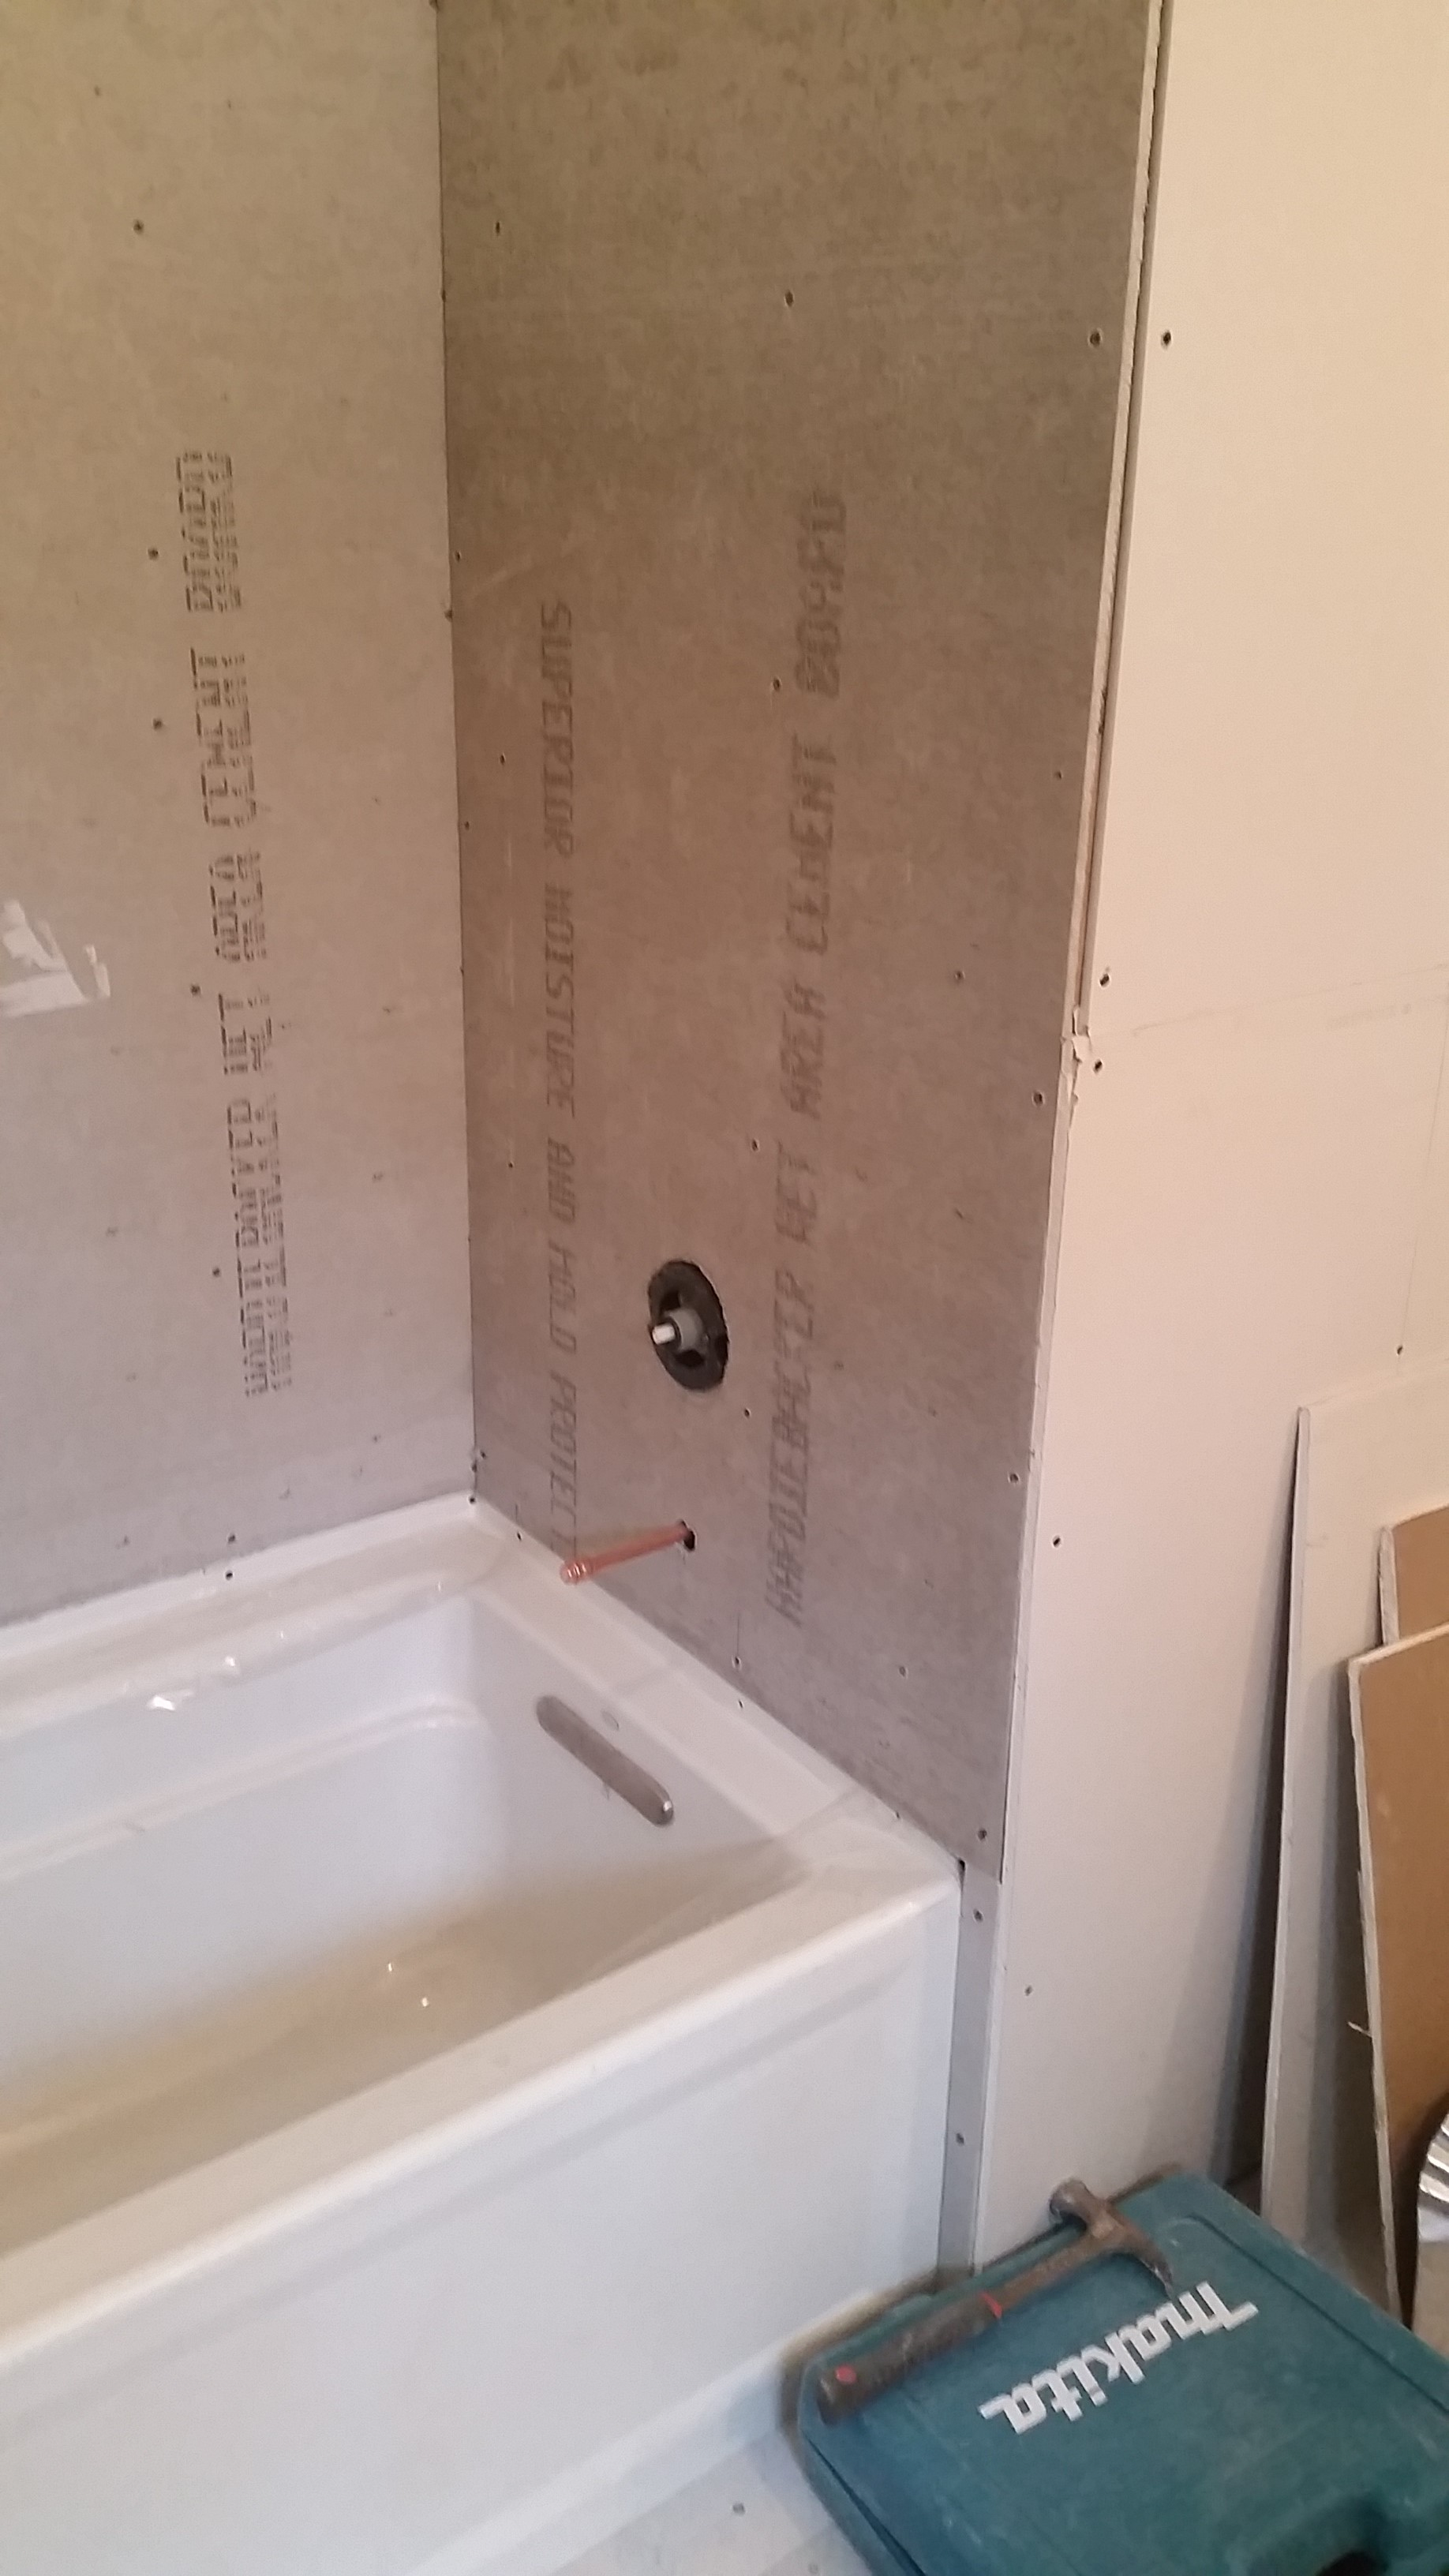 New Tub and Tile Backer